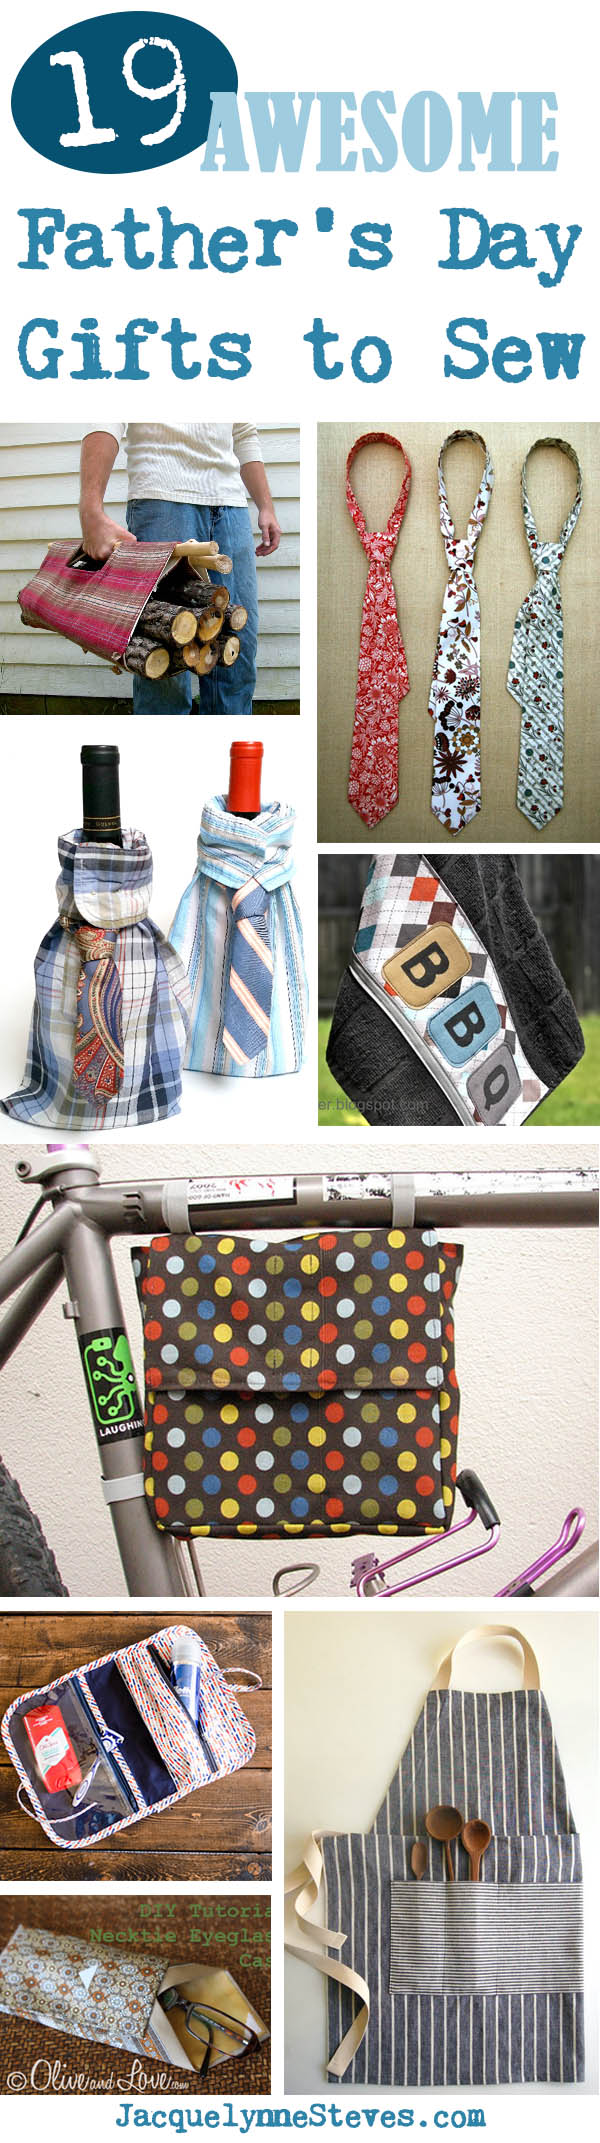 19 Awesome Father's Day Gifts to Sew!